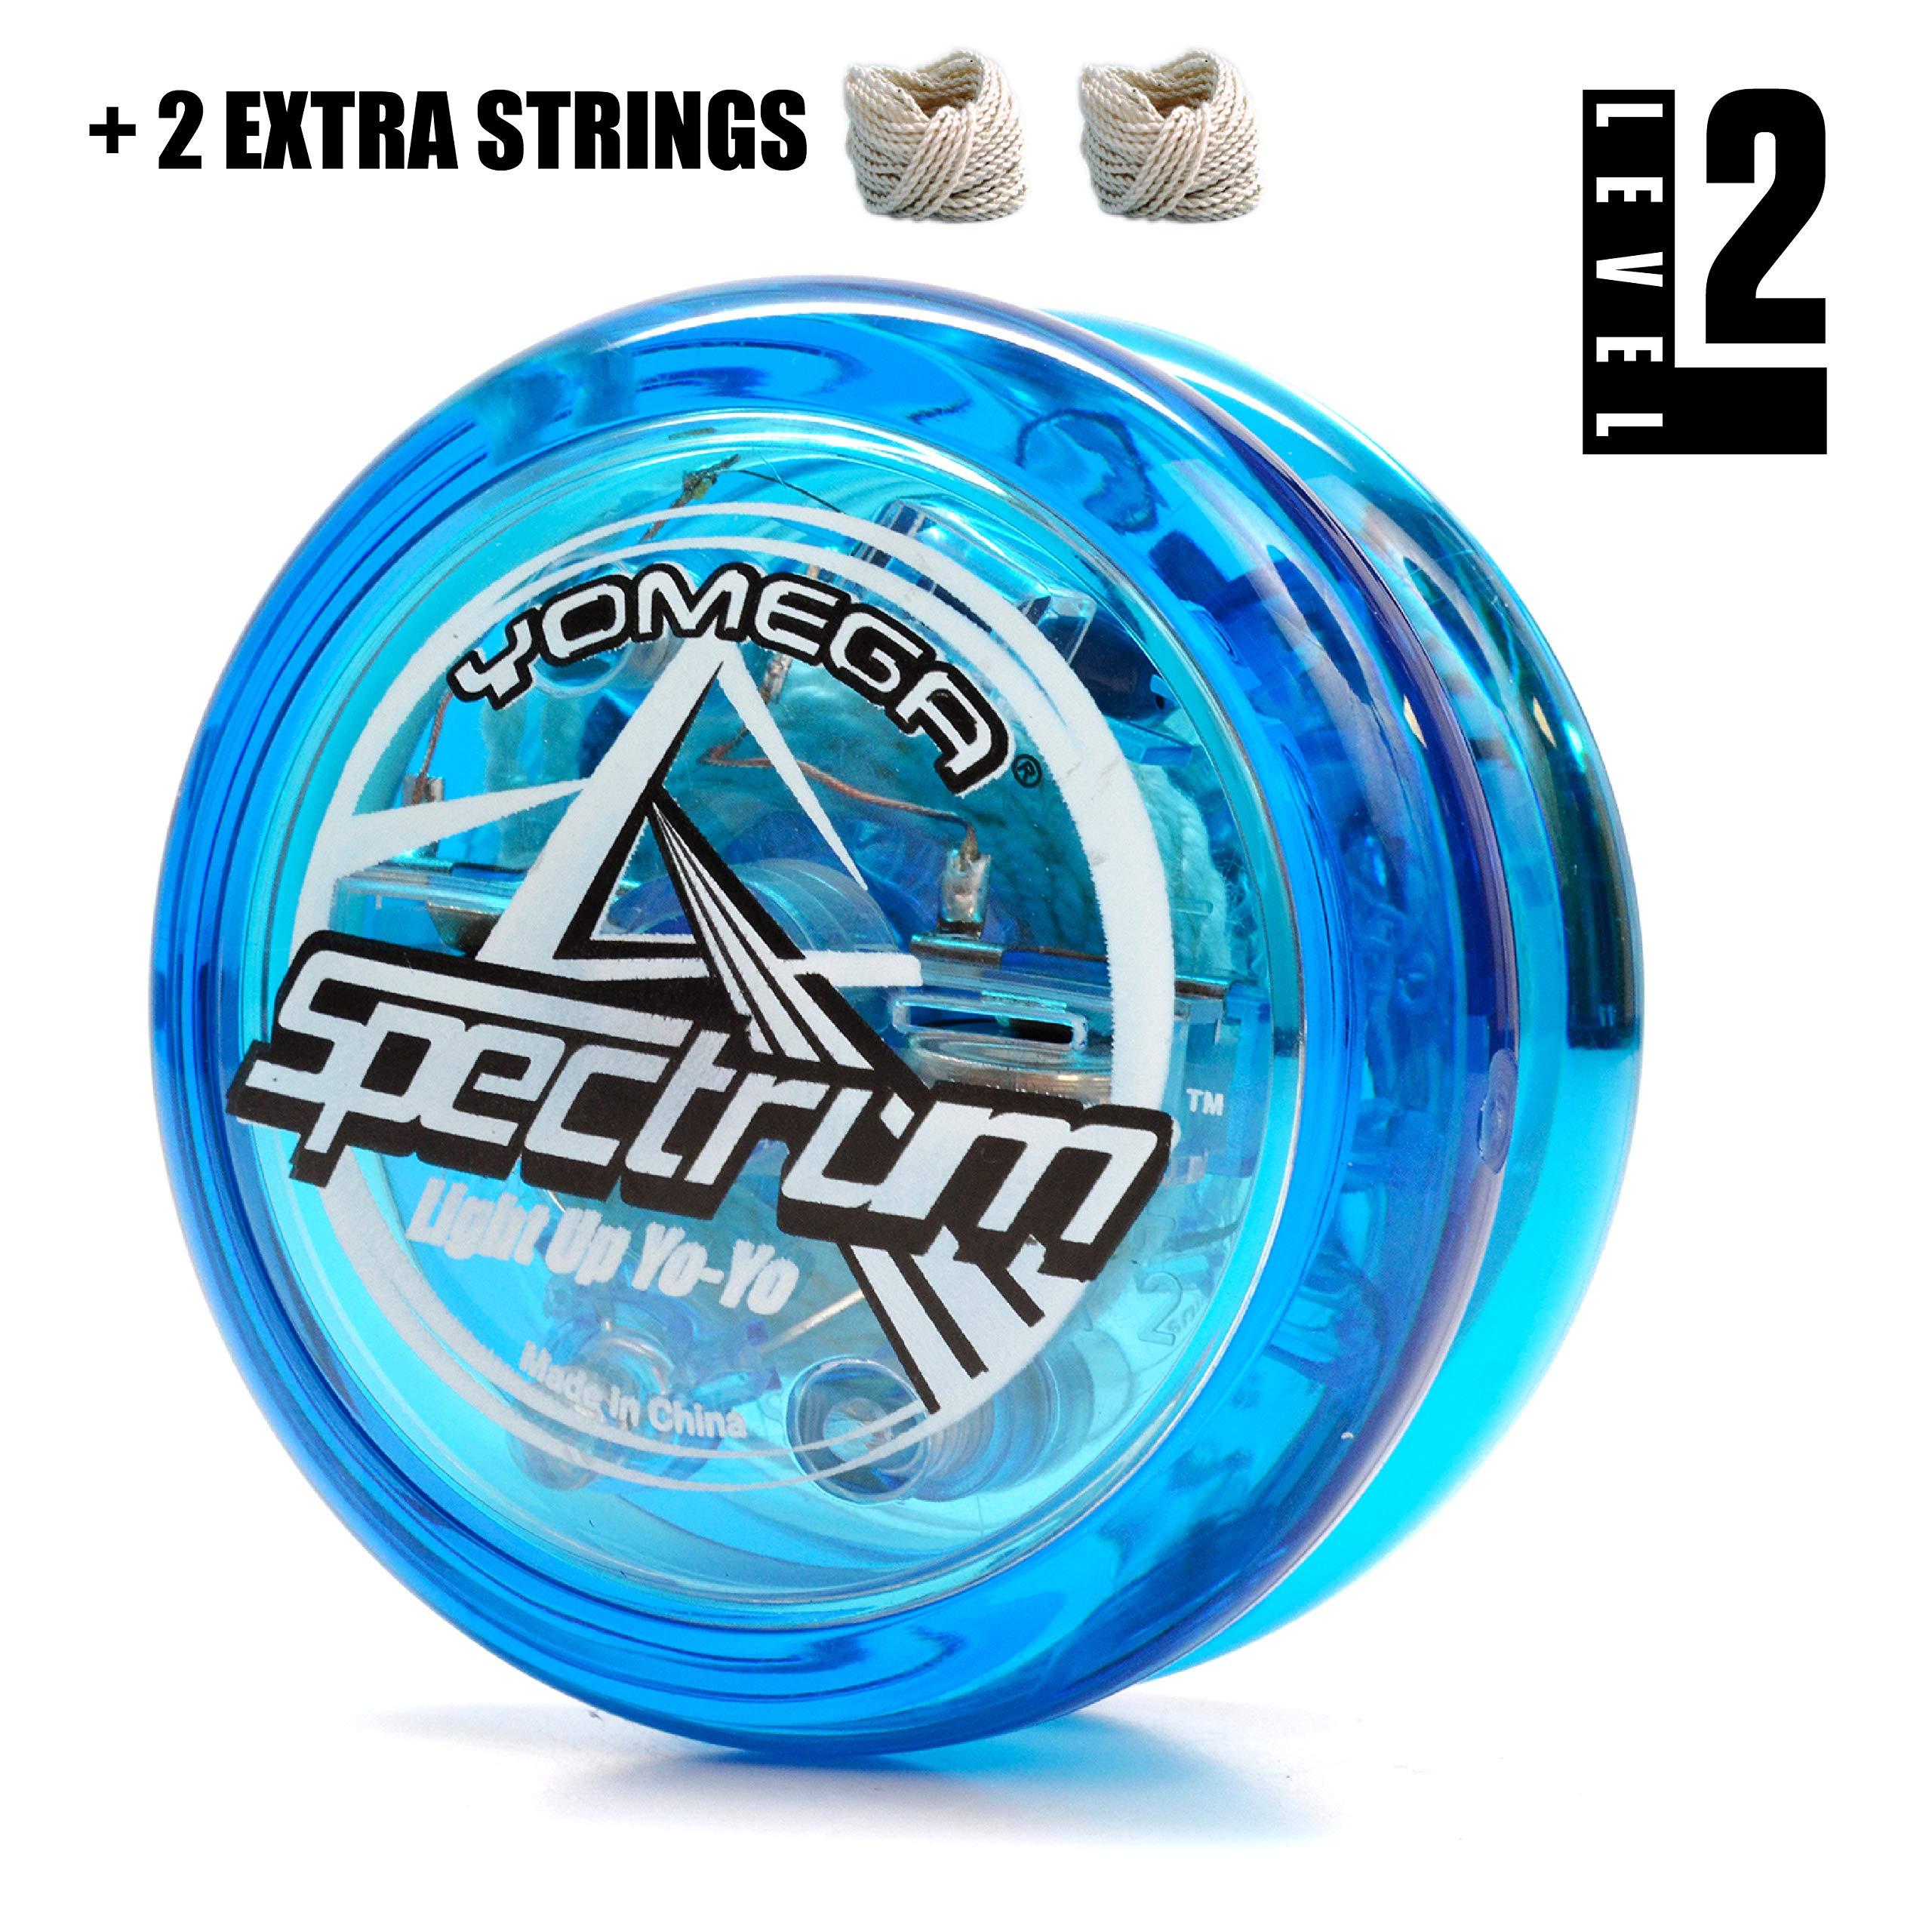 Yomega Spectrum – Light up Fireball Transaxle YoYo with LED Lights for Intermediate, Advanced and Pro Level String Trick Play + Extra 2 Strings & 3 Month Warranty (Blue) by Yomega (Image #2)